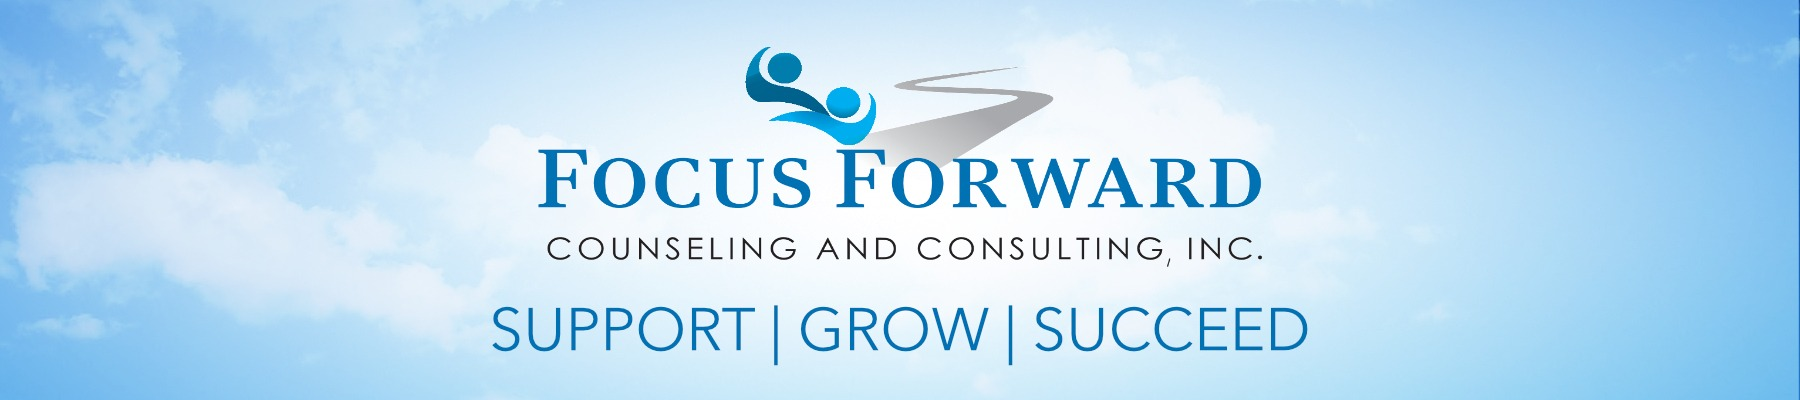 Focus Forward Counseling